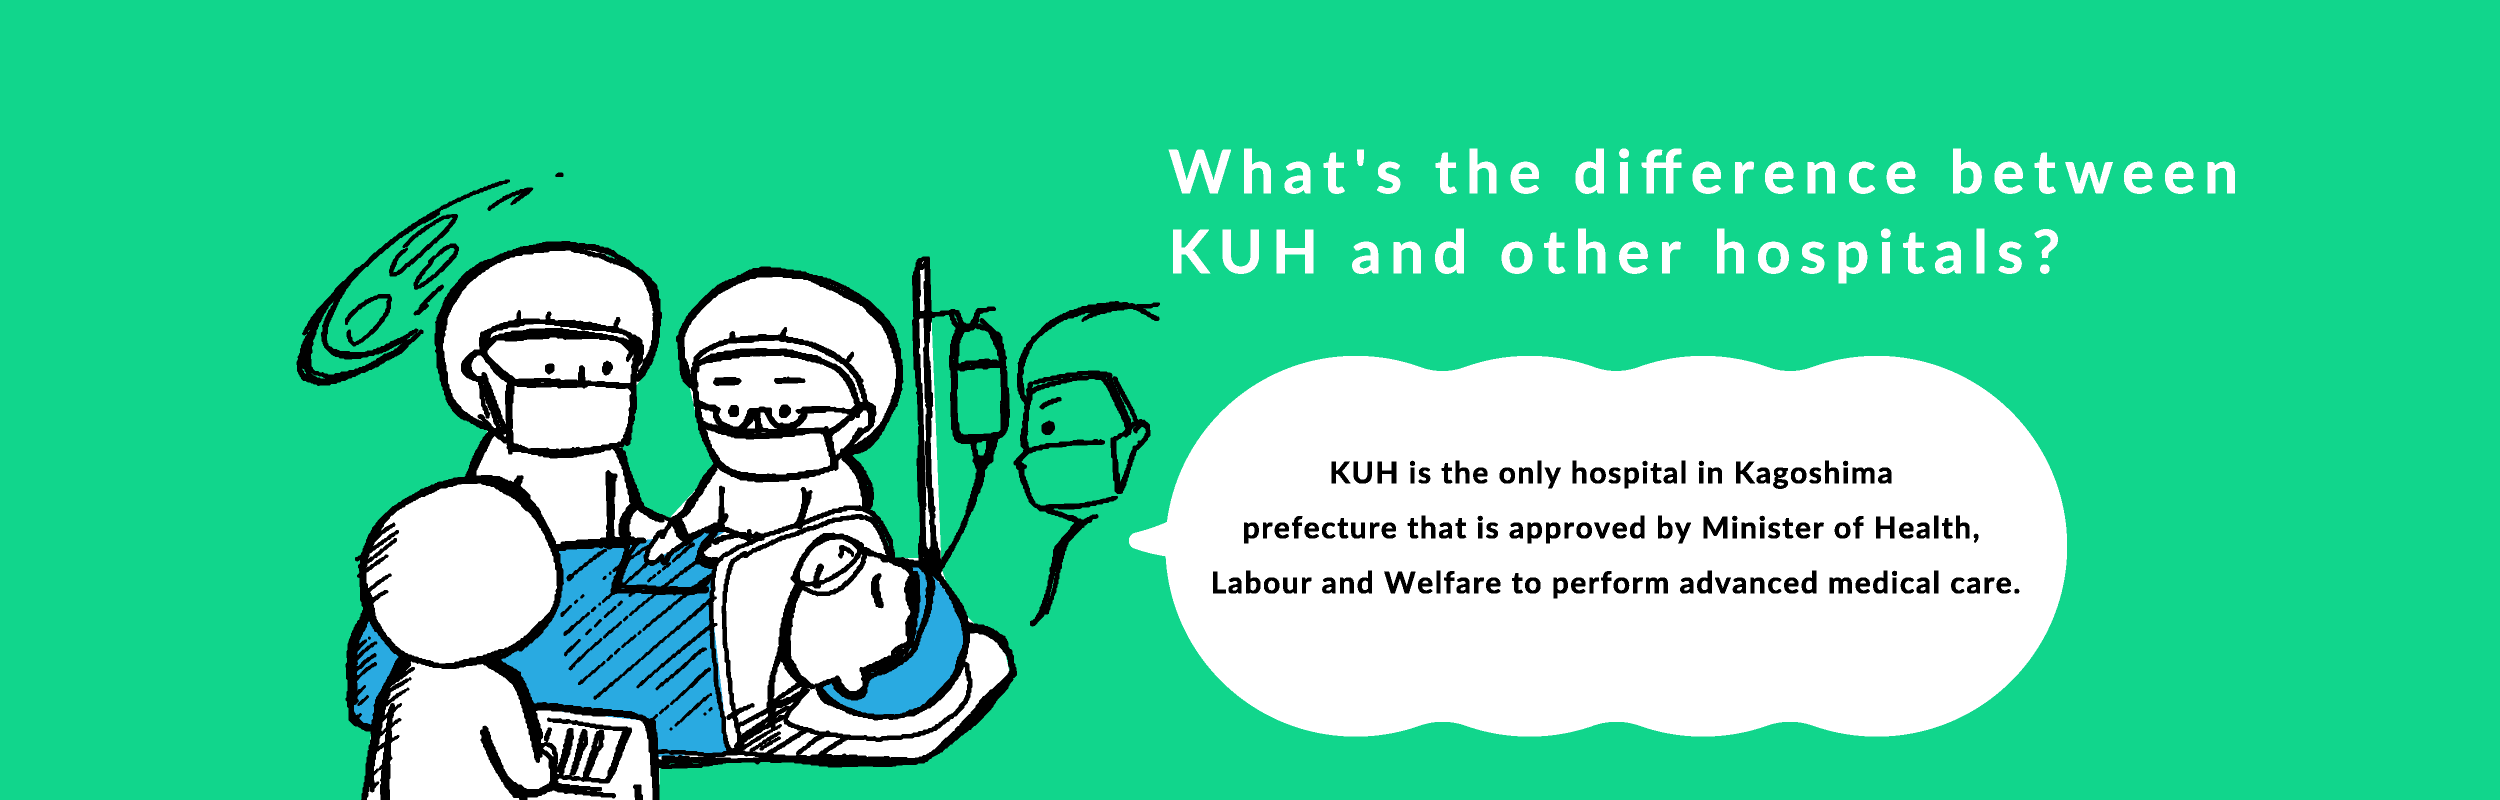 KUH is the only hospital in Kagoshima prefecture that is approved by Minister of Health, Labour and Welfare to perform advanced medical care.